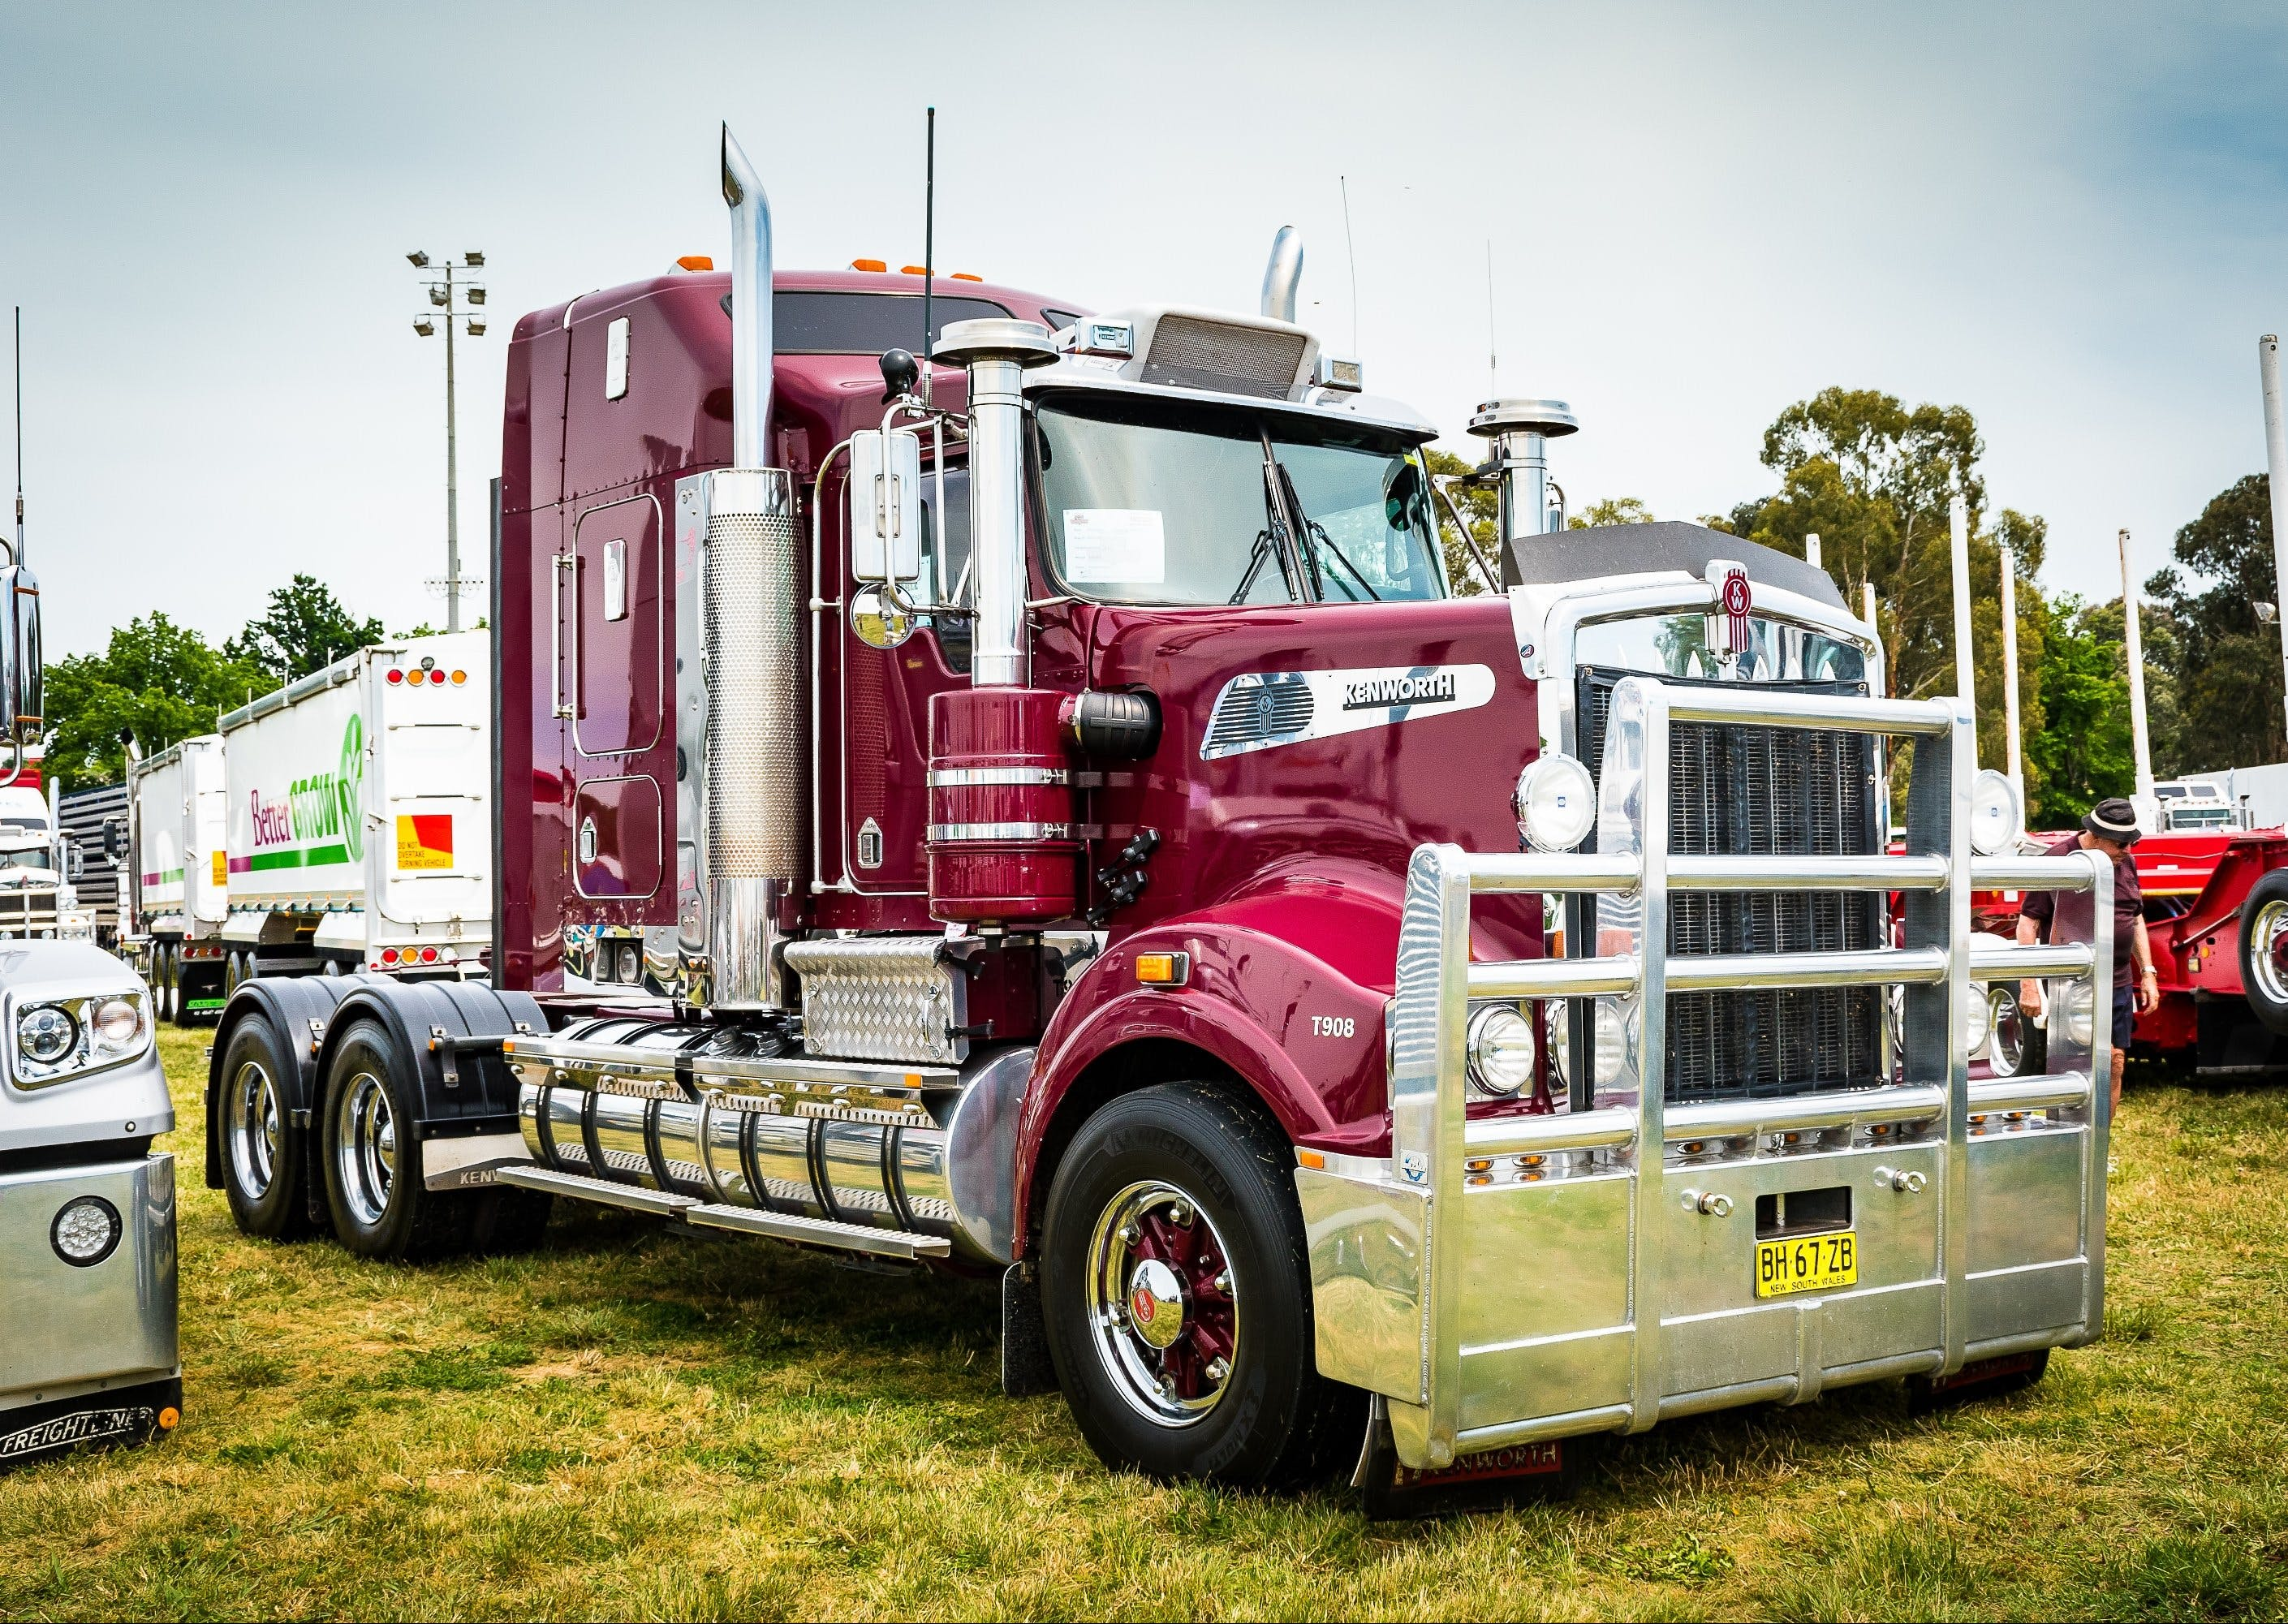 Dane Ballinger Memorial Truck Show - Accommodation in Bendigo